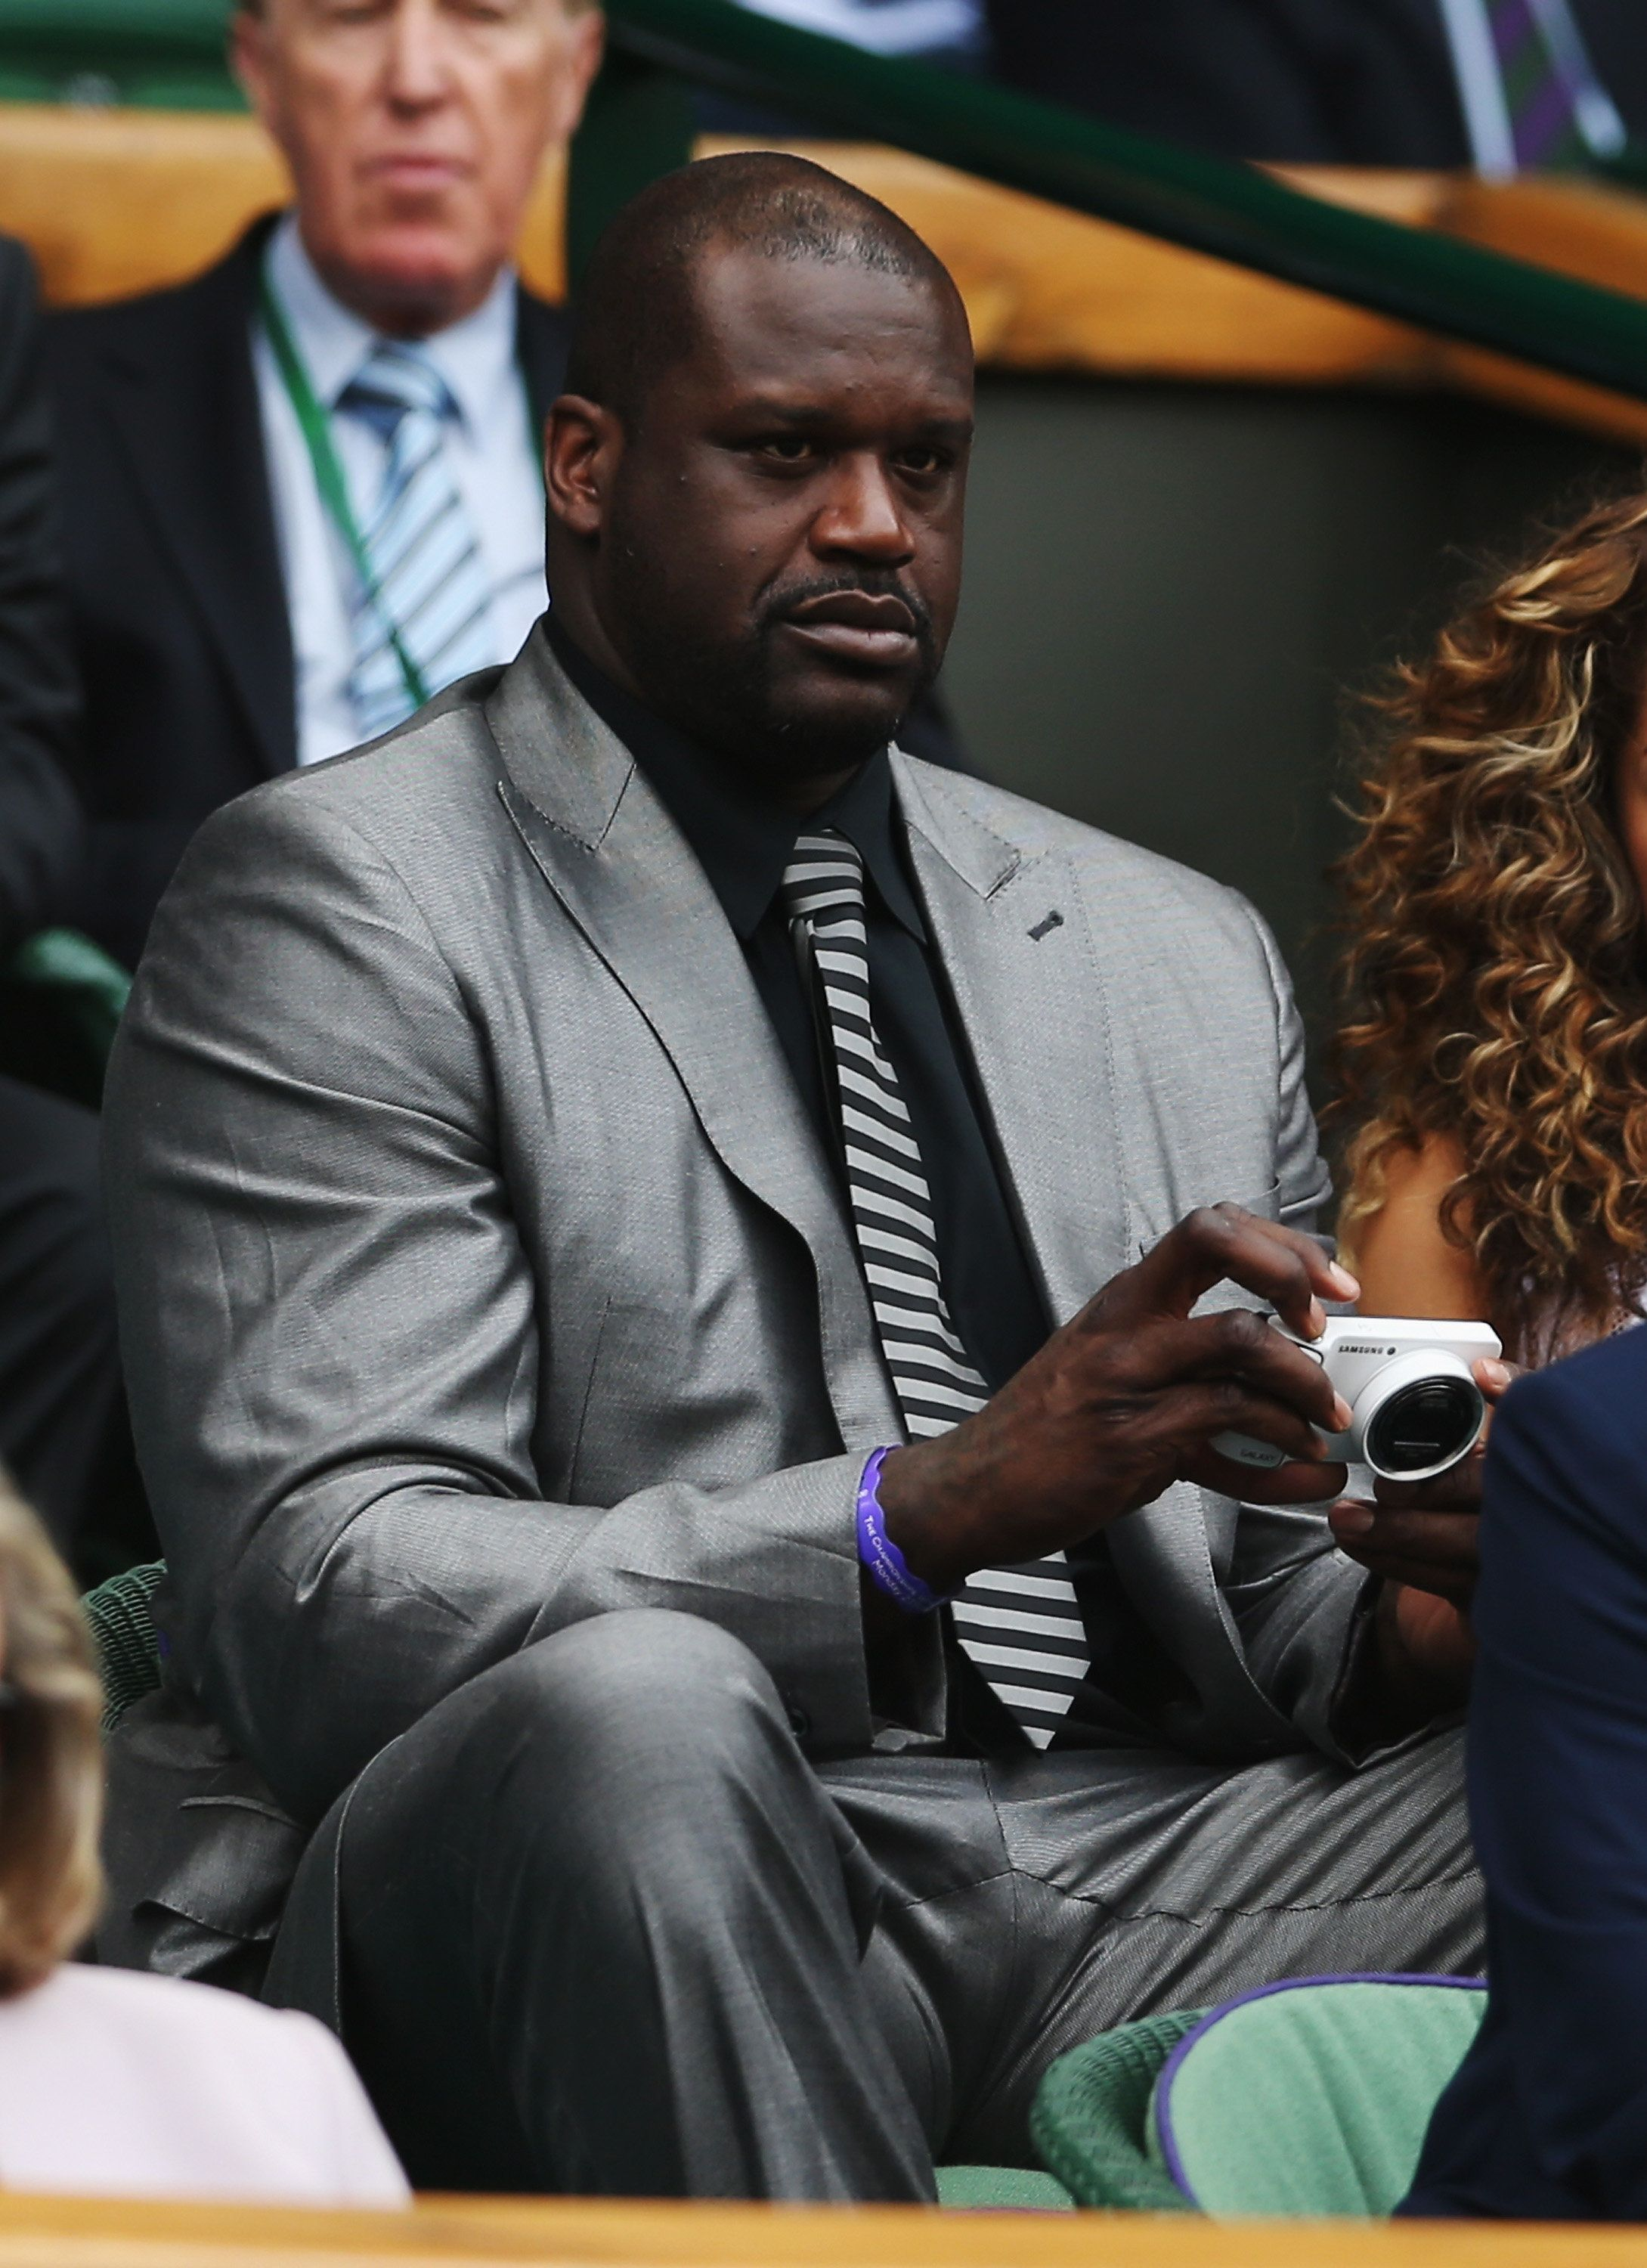 LONDON, ENGLAND - JUNE 23:  Former NBA player Shaquille O'Neal attends day one of the Wimbledon Lawn Tennis Championships at the All England Lawn Tennis and Croquet Club at Wimbledon on June 23, 2014 in London, England.  (Photo by Matthew Stockman/Getty Images)